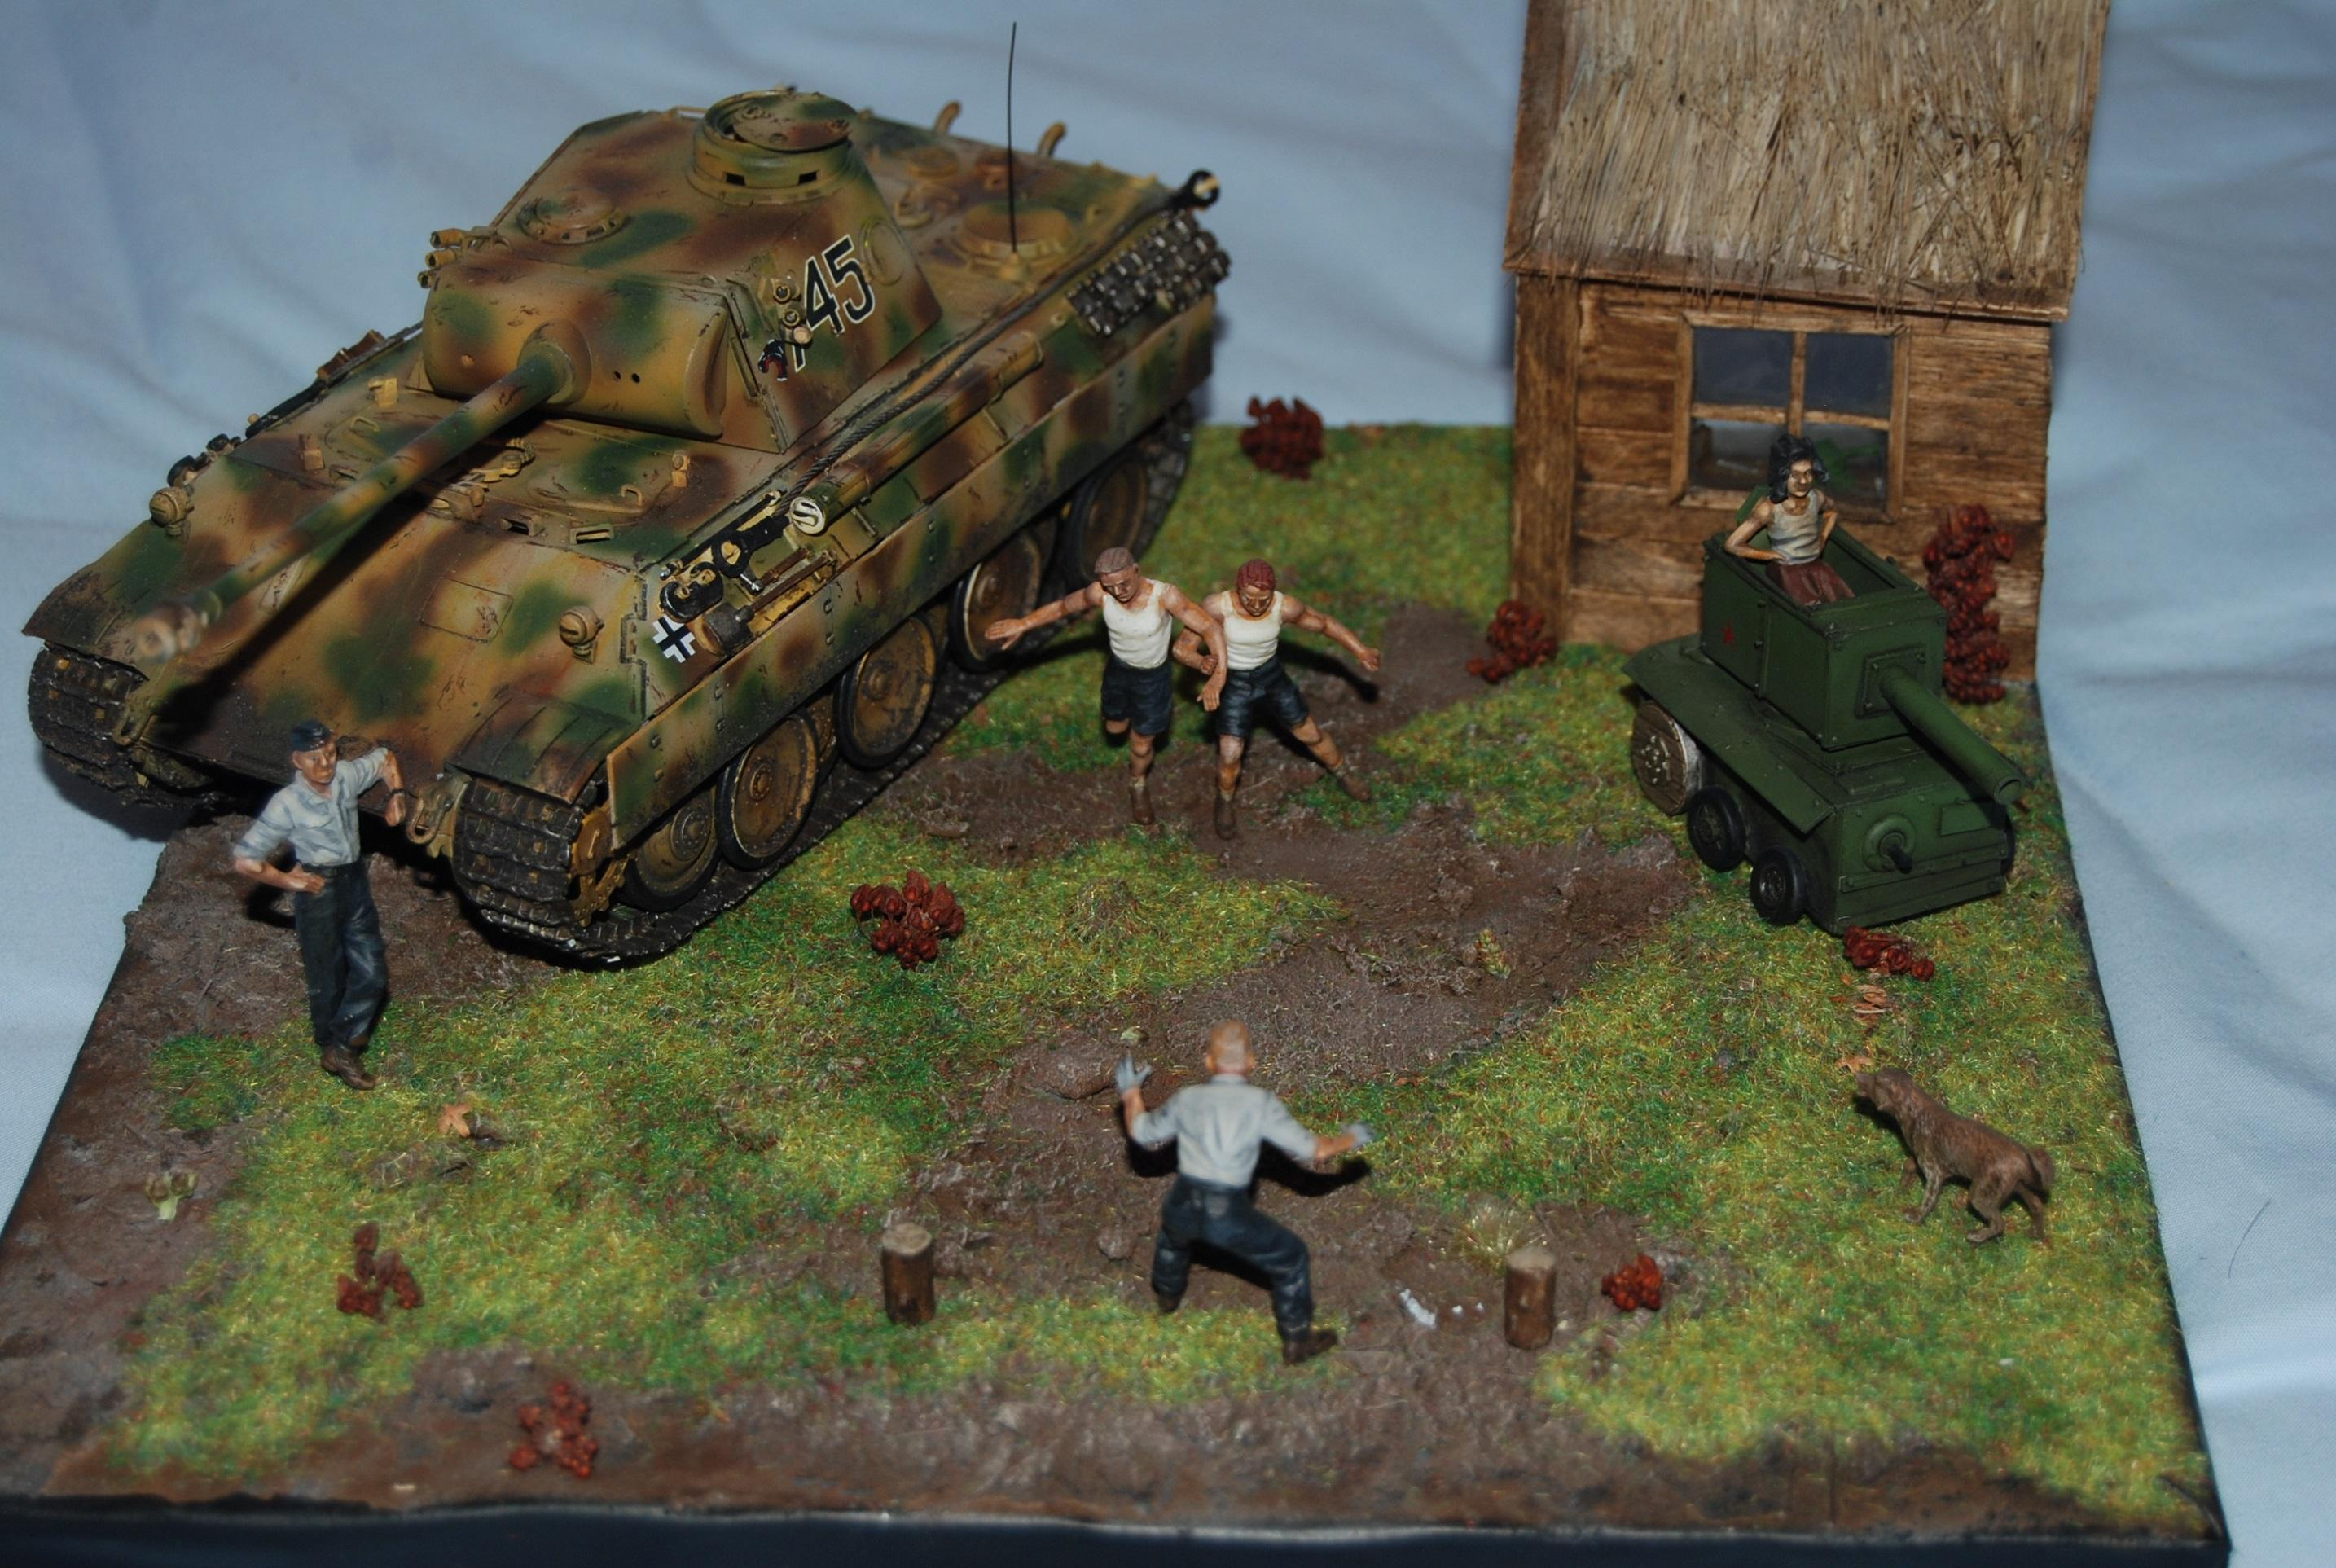 Diorama, Germans, Nazi, World War 2